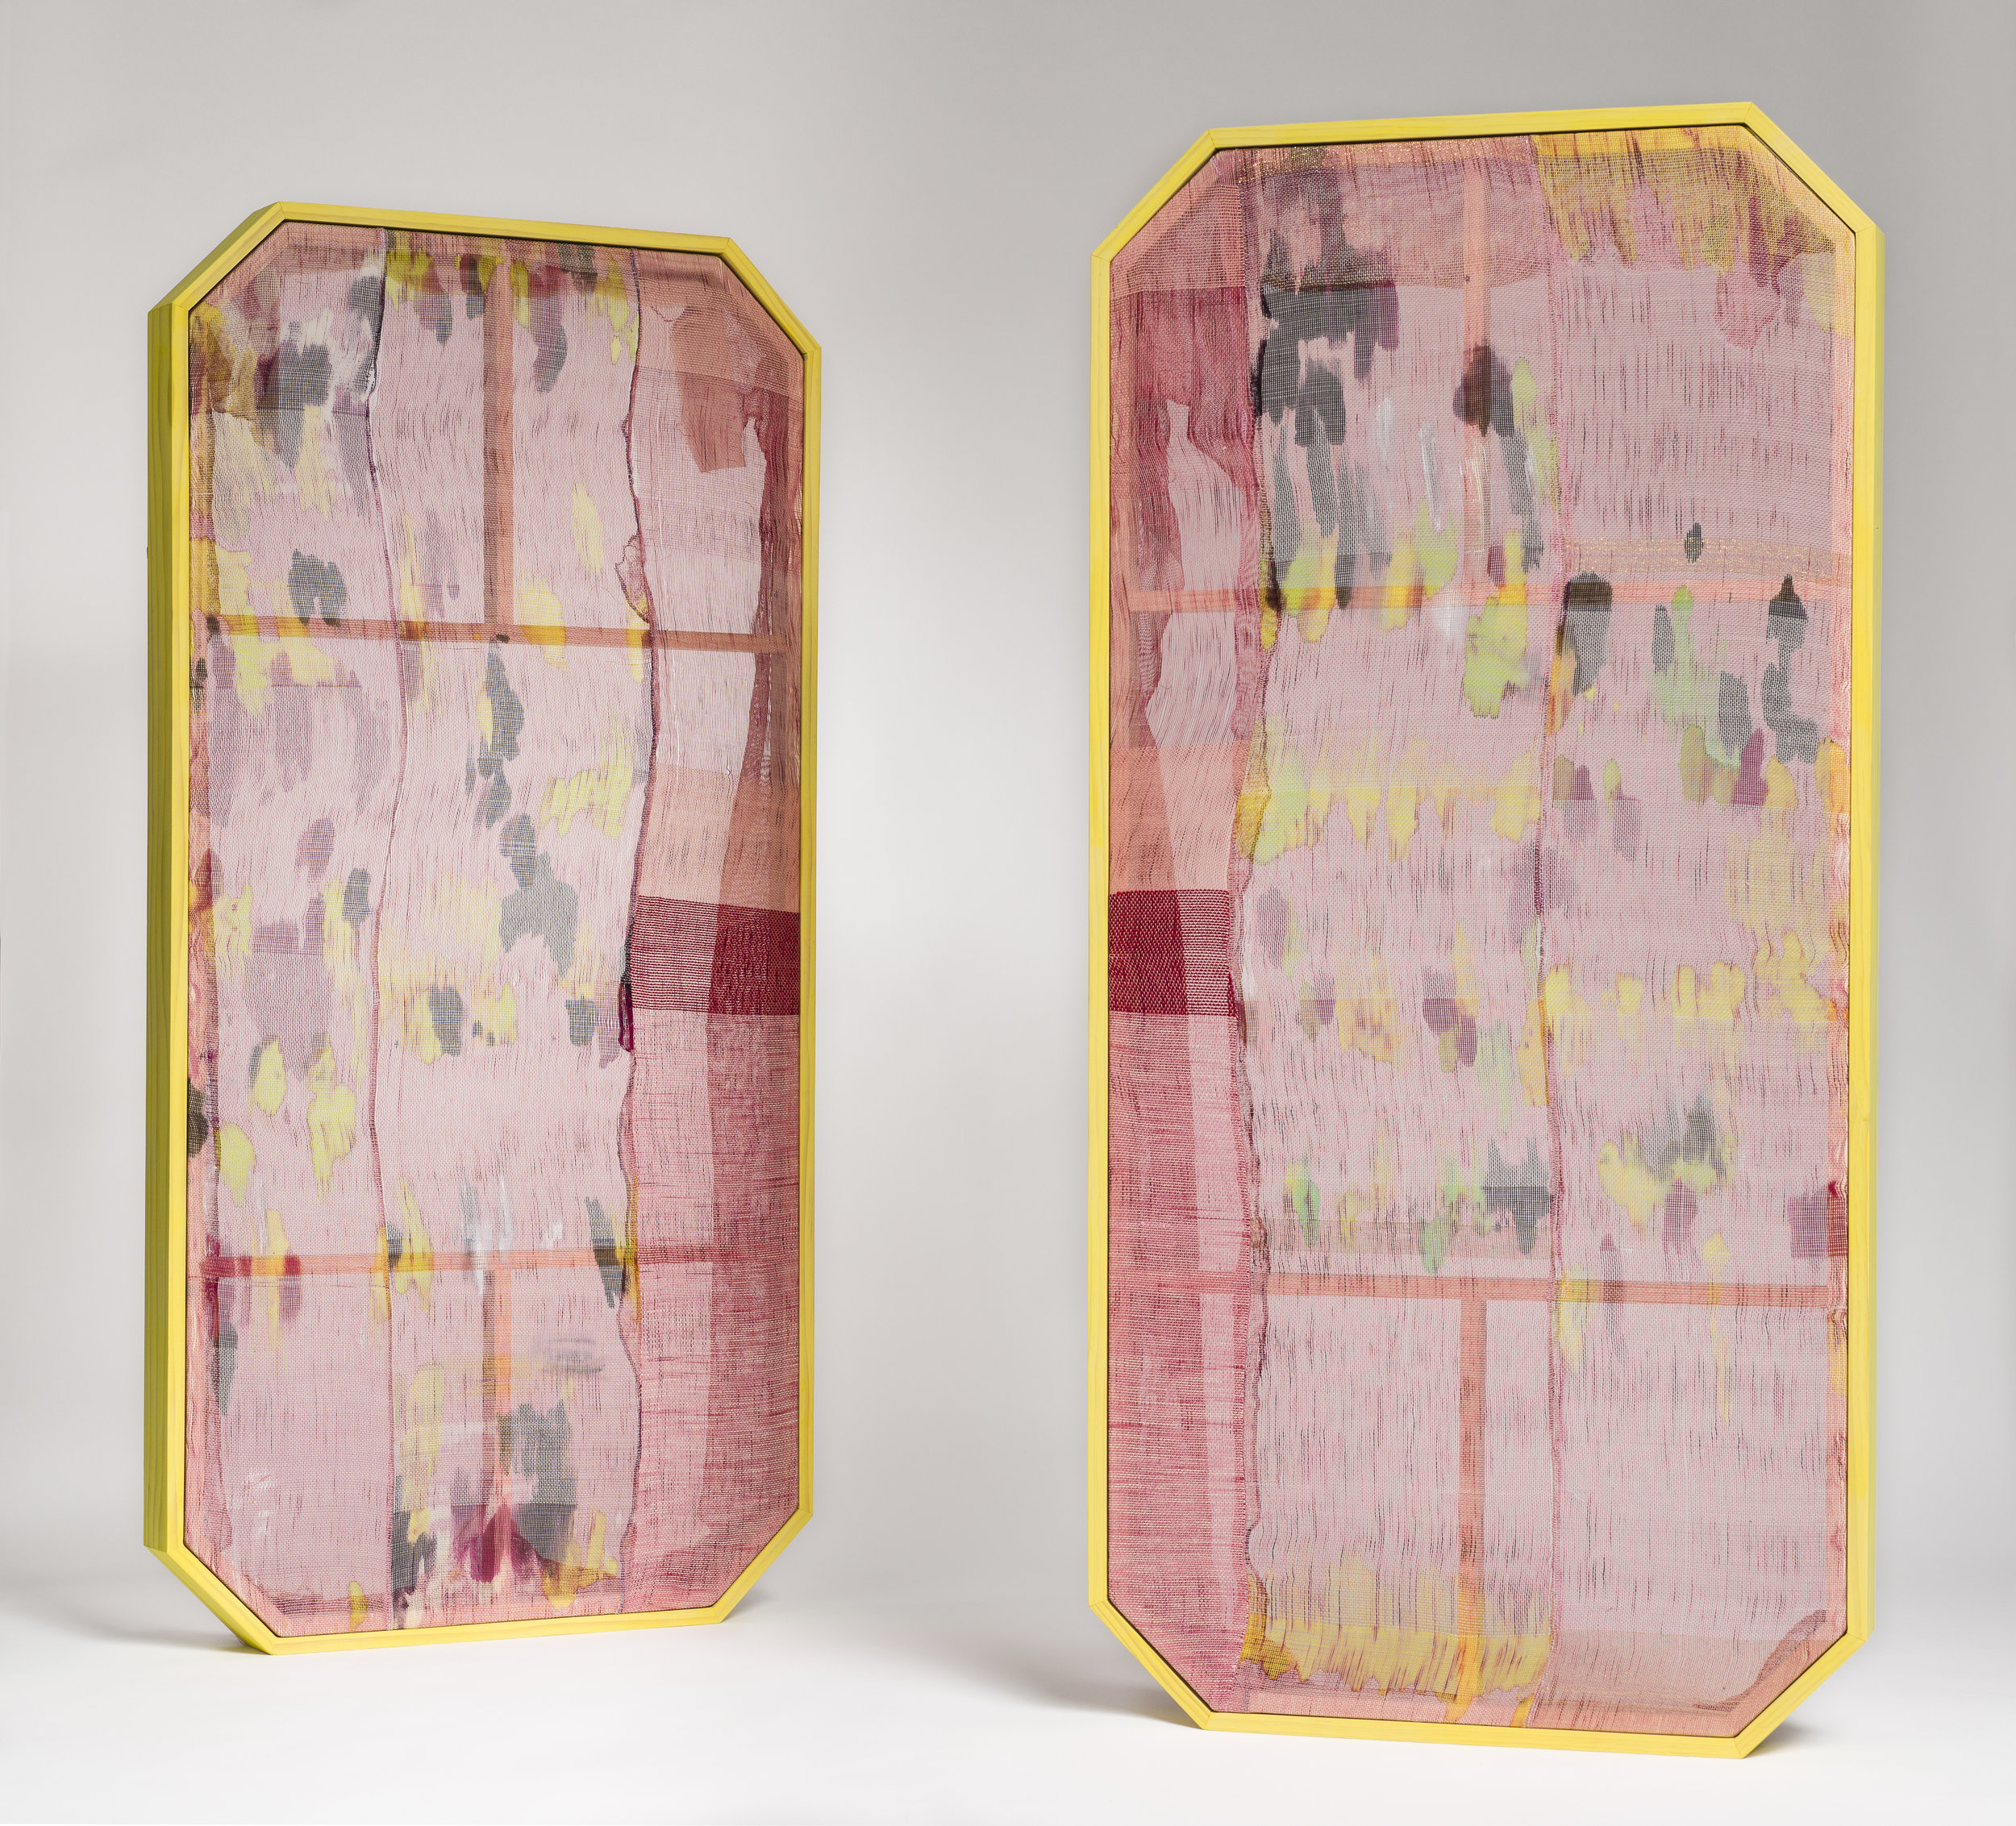 Victoria Manganiello,  Untitled #102 & Untitled #103 , 2018, Natural and Synthetic Fiber, Artist Frame, 62 x 30 x 3.5 in.